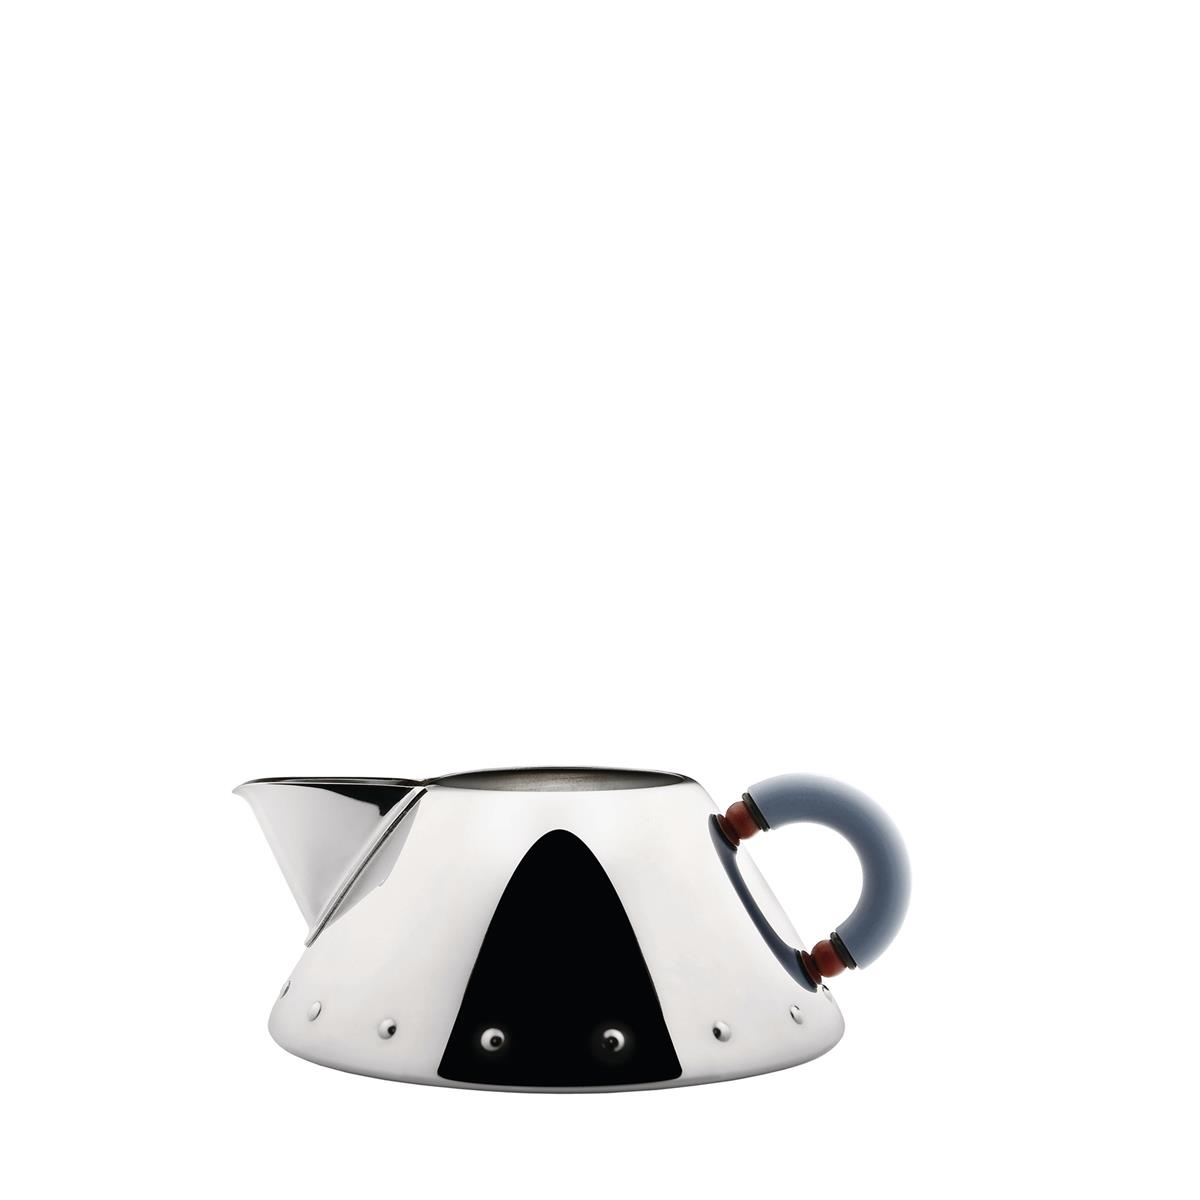 Alessi-Creamer in 18/10 stainless steel mirror polished with handle in PA, light blue